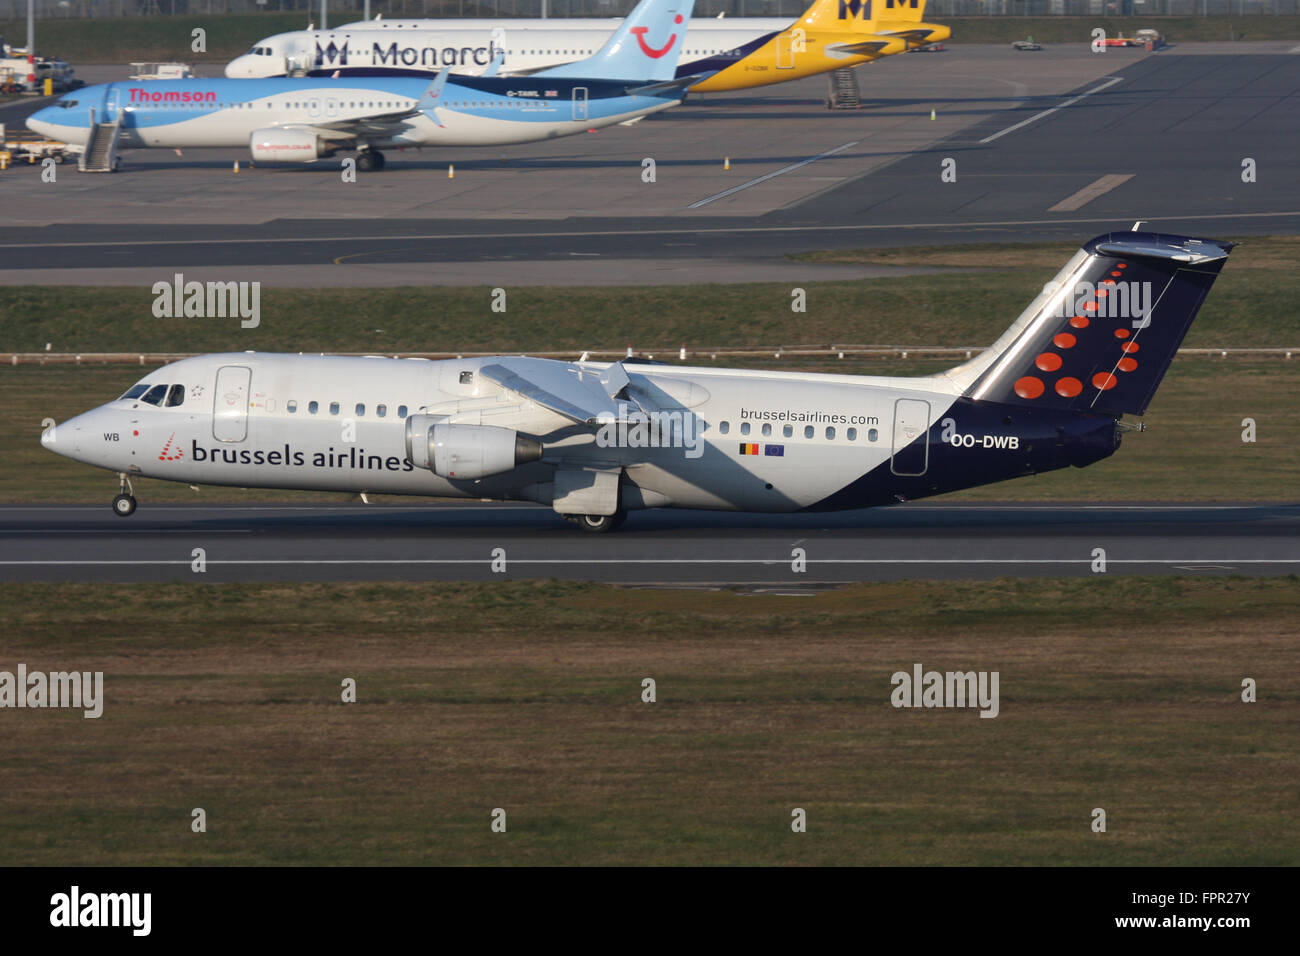 BRUSSELS AIRLINES RJ AVRO - Stock Image